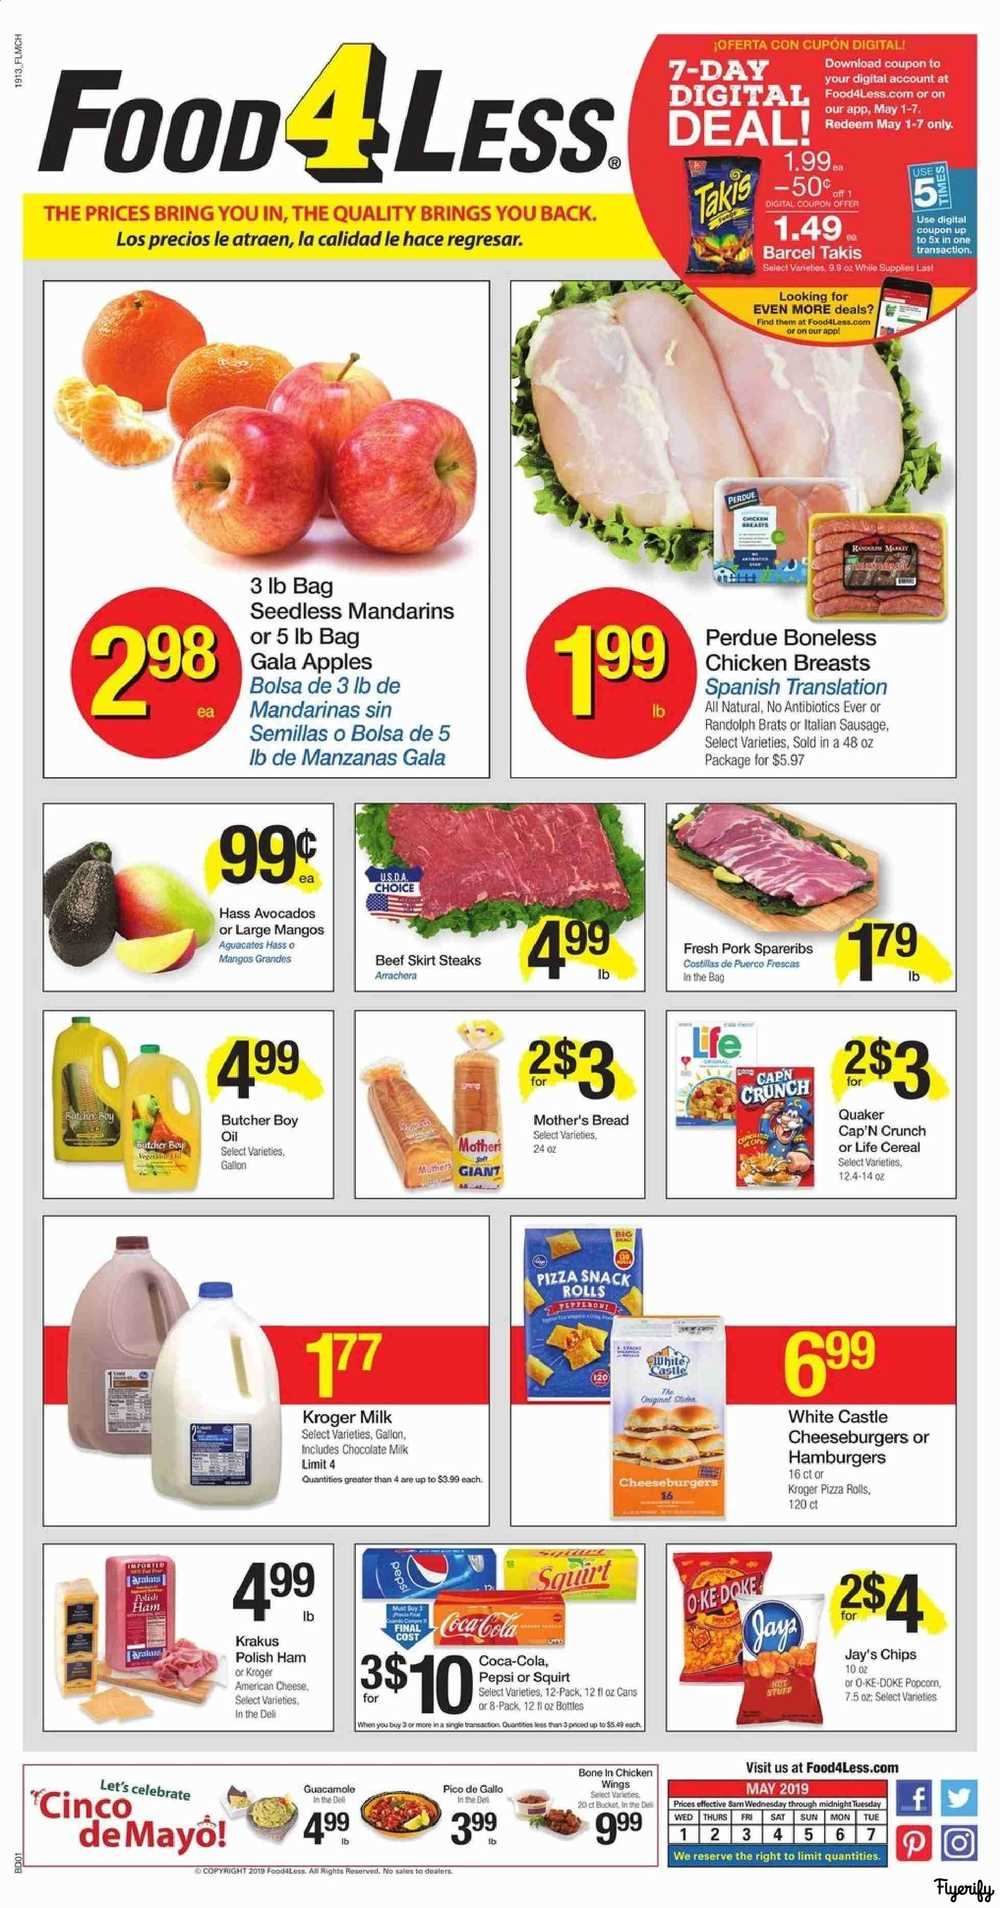 d5e0d99c0ea Food 4 Less (IL - Chicago) Weekly Ad   Flyer May 1 to 7